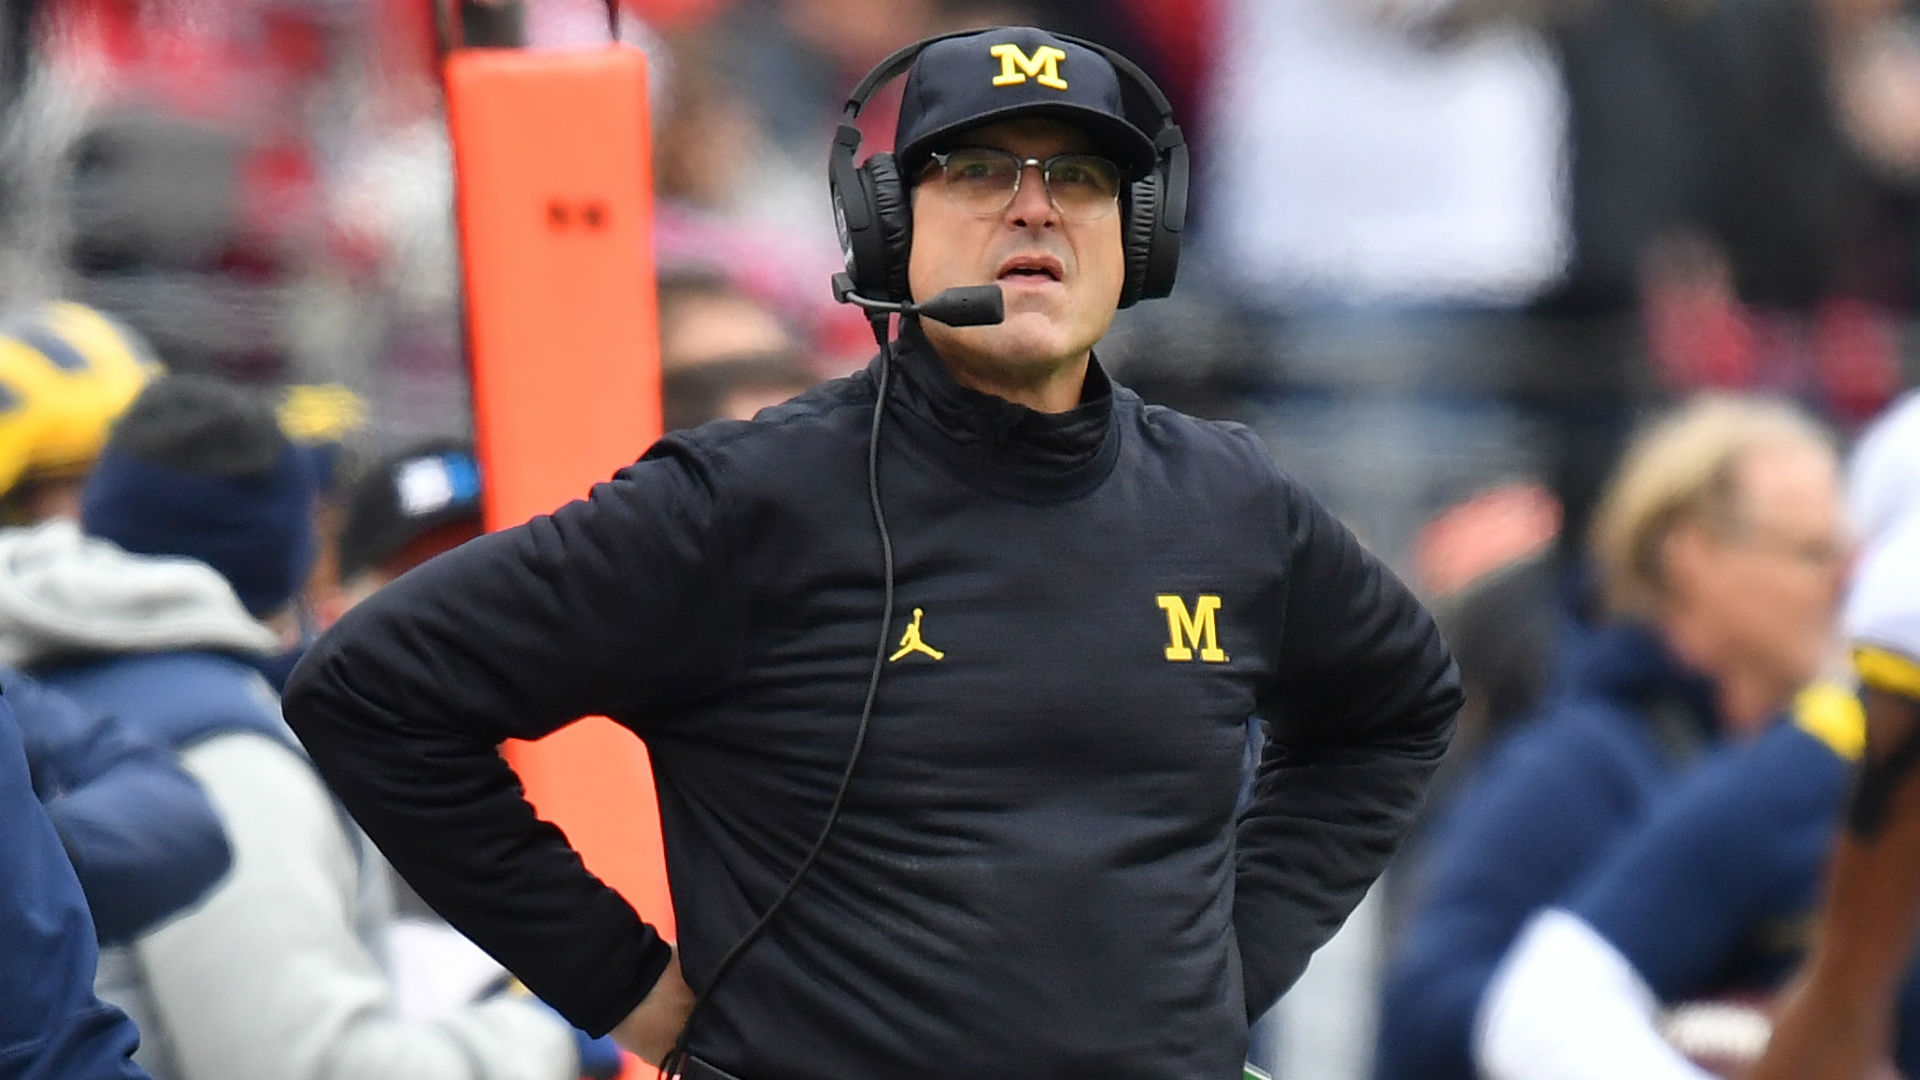 Michigan AD wants Jim Harbaugh to stay until he retires